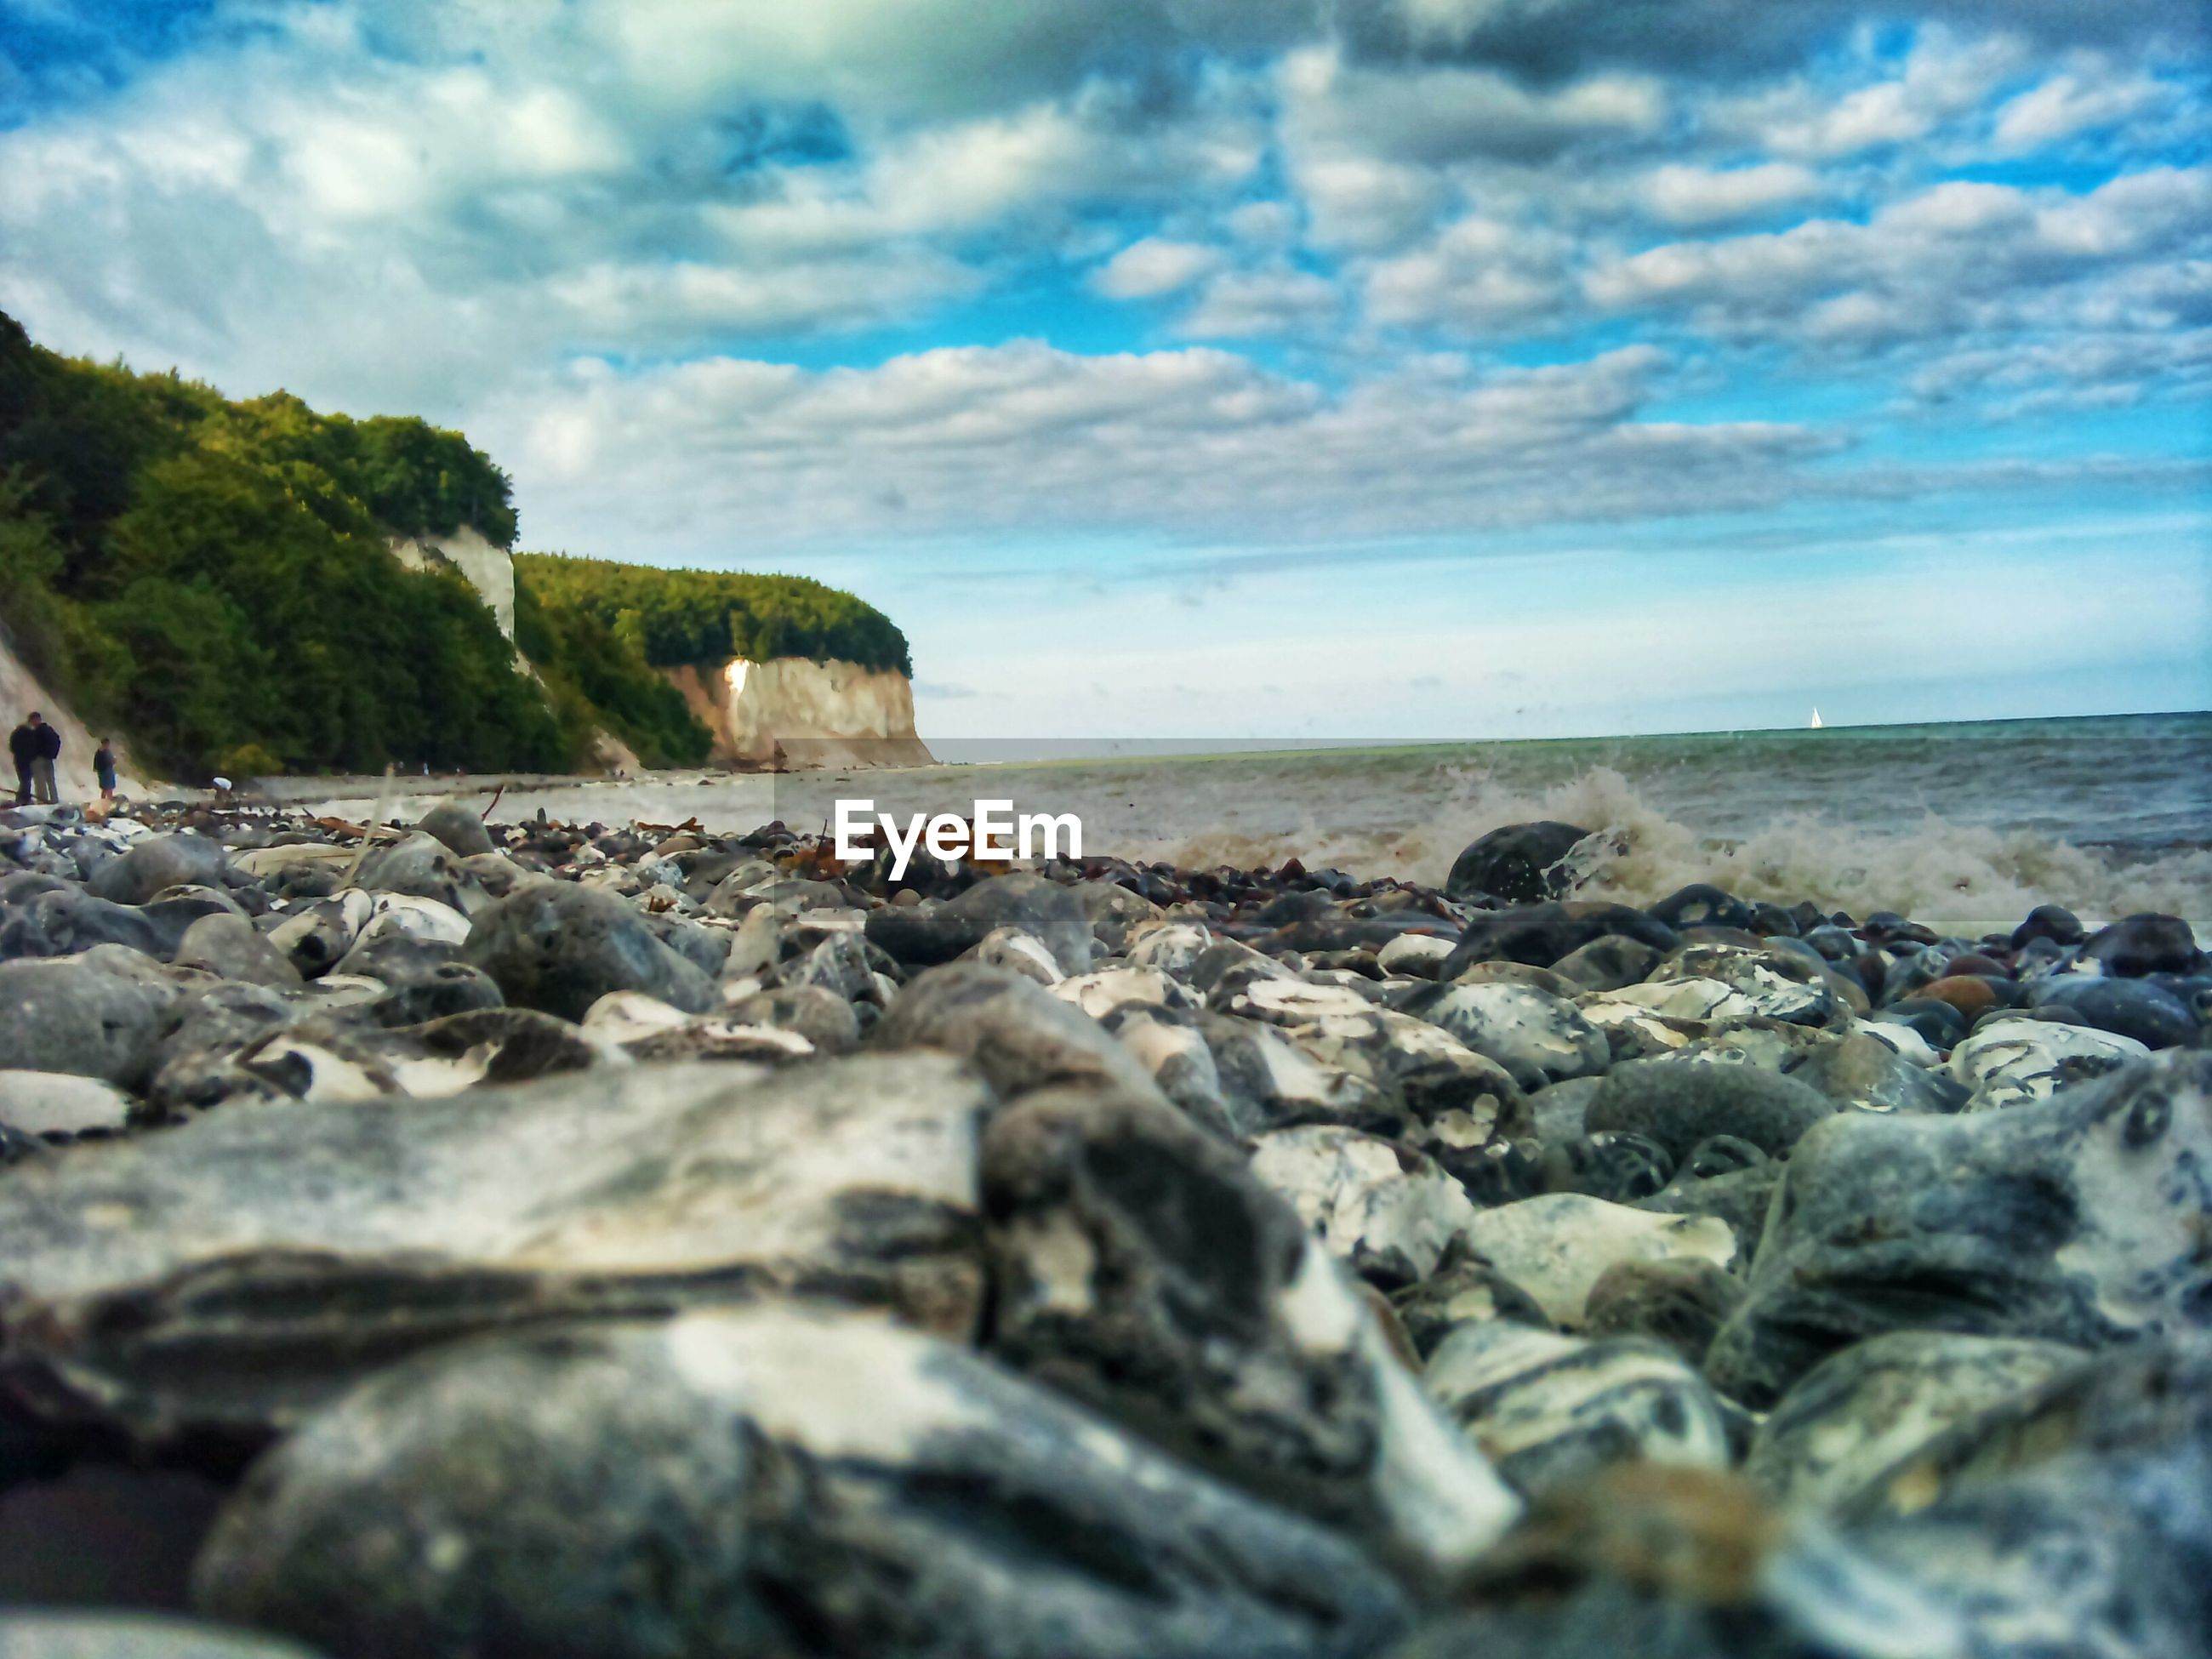 sky, sea, rock - object, beach, cloud - sky, water, stone - object, tranquility, tranquil scene, pebble, scenics, shore, beauty in nature, nature, horizon over water, surface level, stone, cloudy, cloud, rock